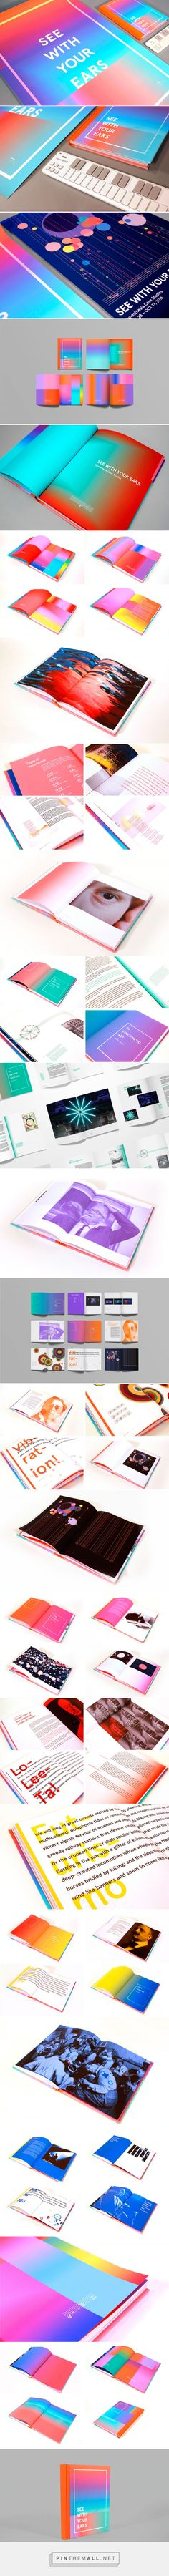 Graphisms , Typography , Infographics and Design - Gallery of pins created with pin them all : multiple images and text pins - Pin . Web Design, Layout Design, Bts Design Graphique, Art Graphique, Packaging Design, Branding Design, Logo Design, Design Poster, Print Design